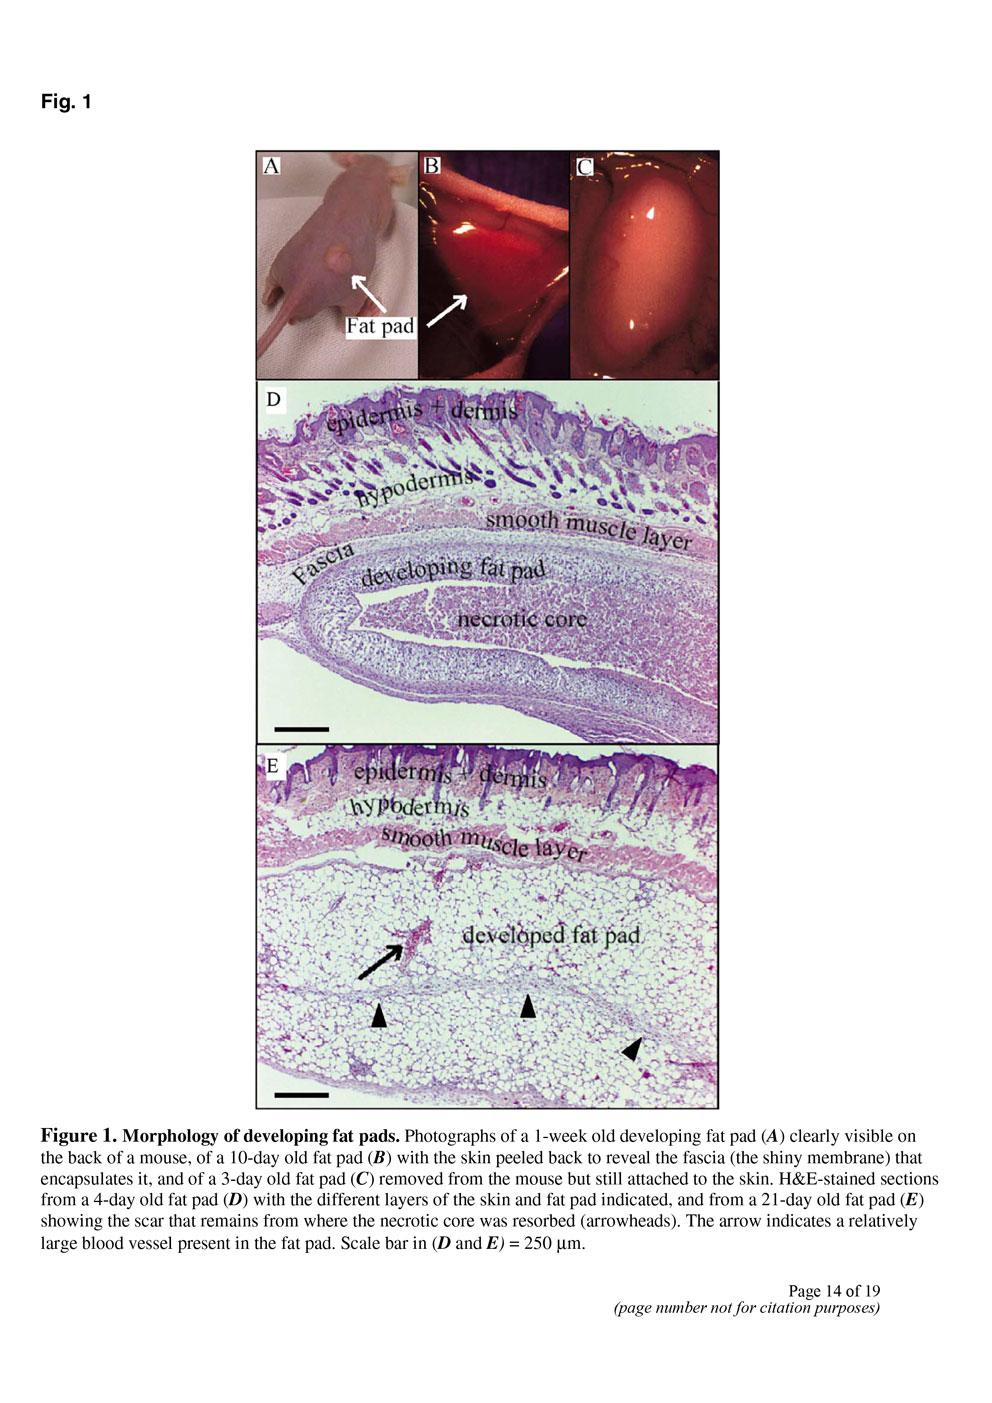 Angiogenesis in an in vivo model of adipose tissue development P14